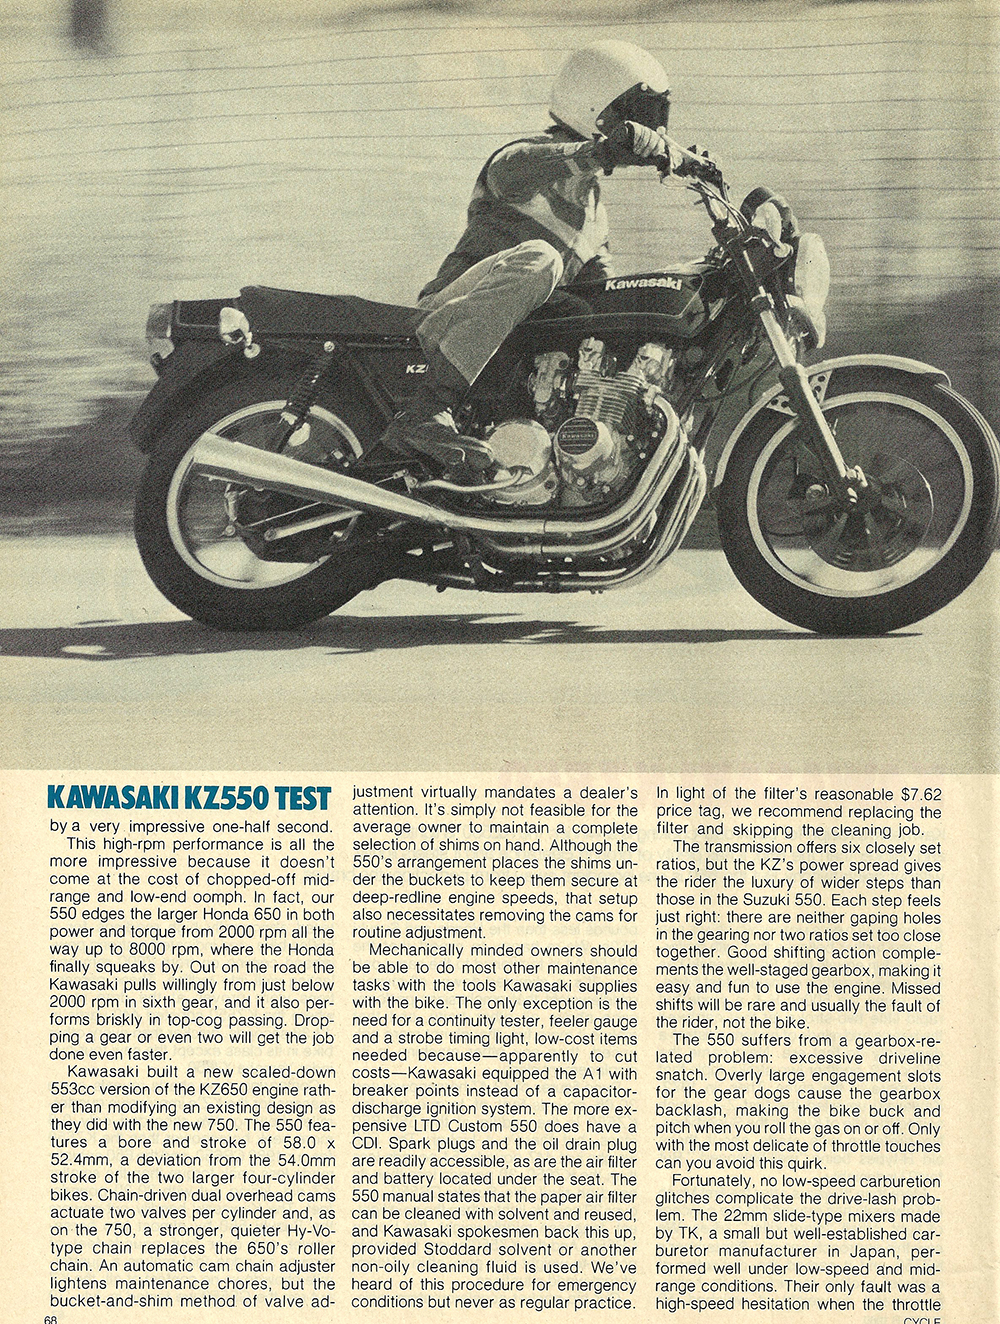 1980 Kawasaki KZ550 road test 02.jpg